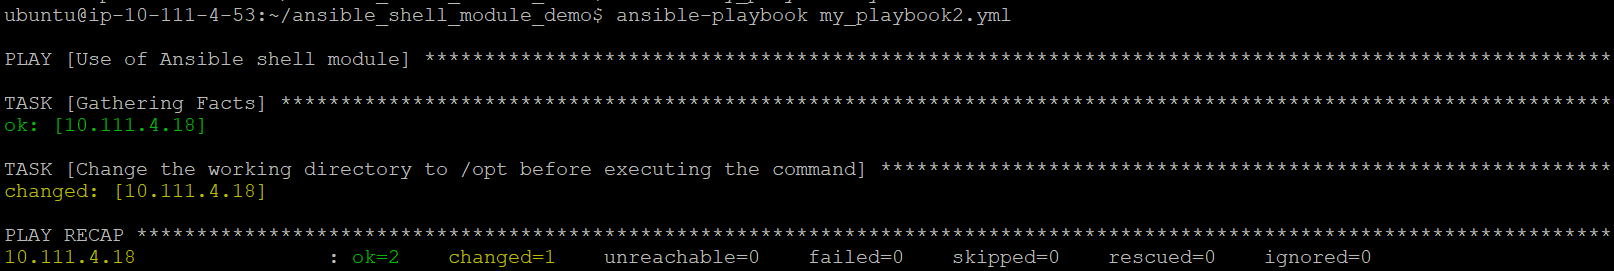 Output of ansible shell module command with chdir parameter